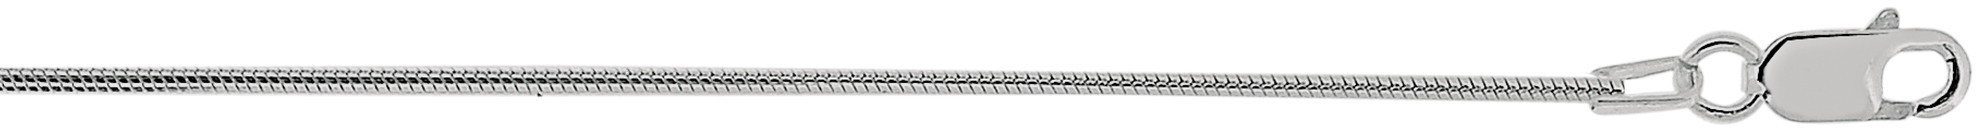 "24"" 1.2mm (0.05"") Polished Diamond Cut 925 Sterling Silver Snake Chain w/ Lobster Clasp"